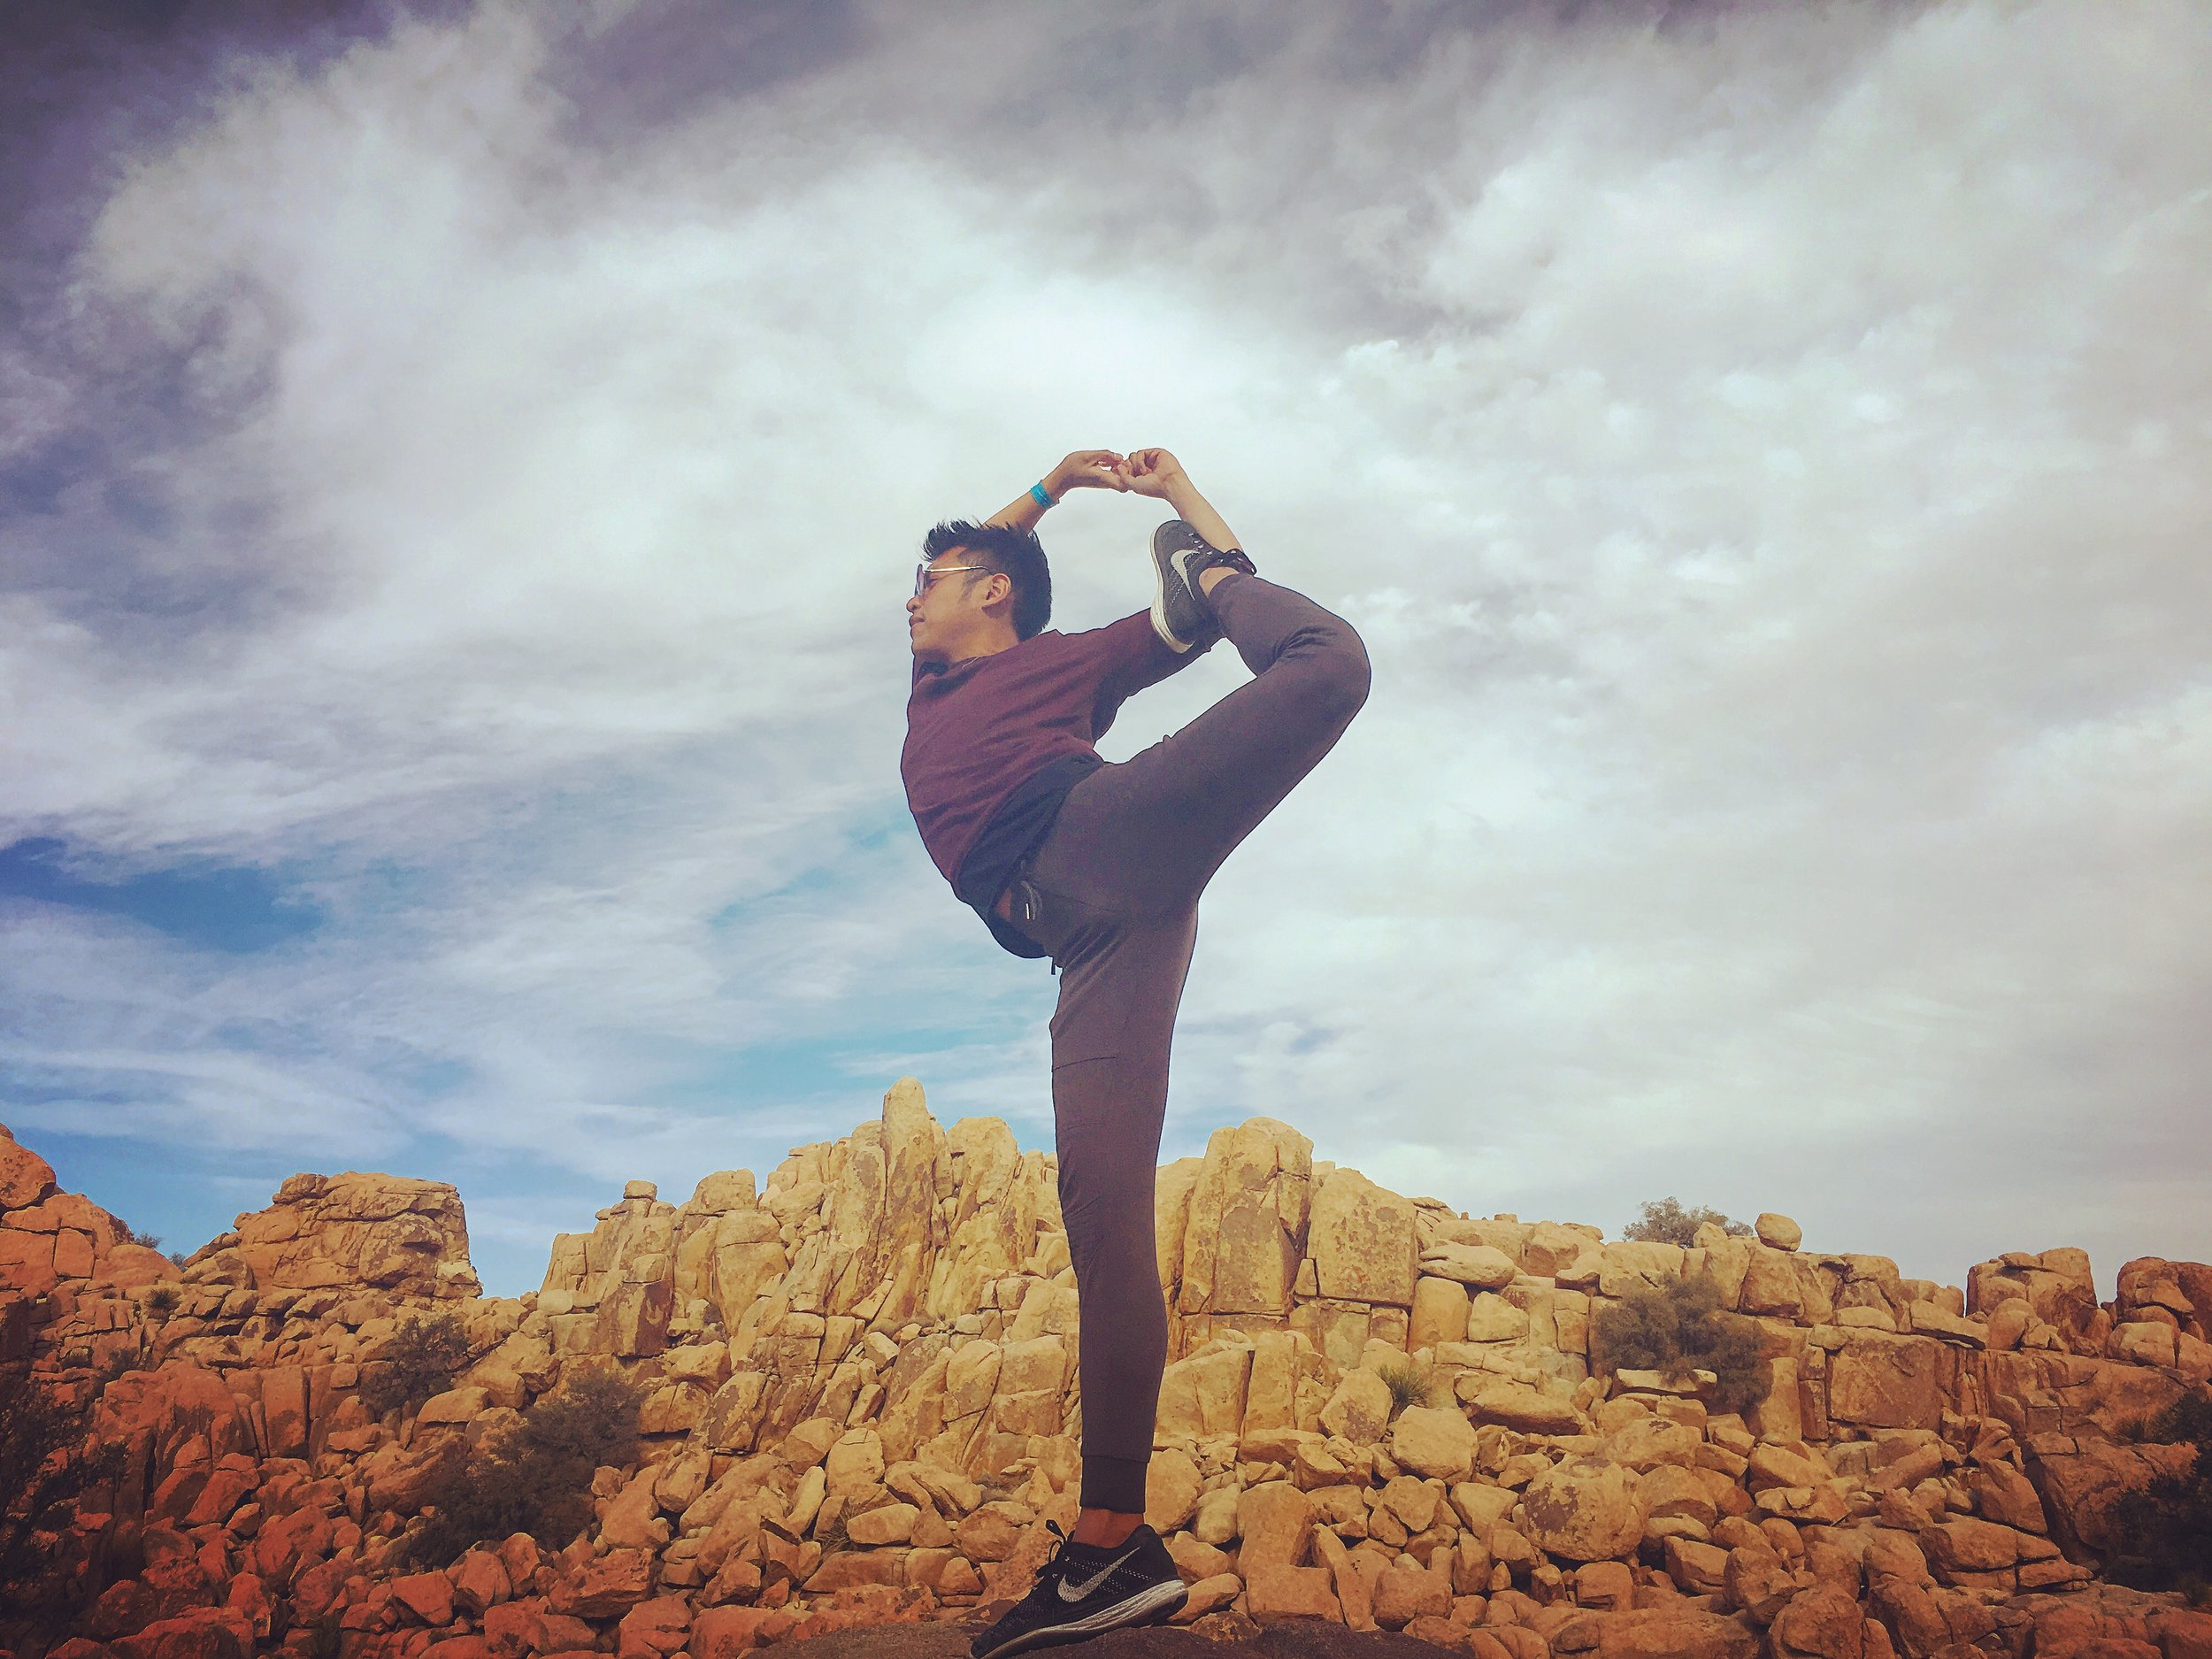 Anthony practicing Natarajasana (Lord of the Dance pose with bind) at Joshua Tree National Park